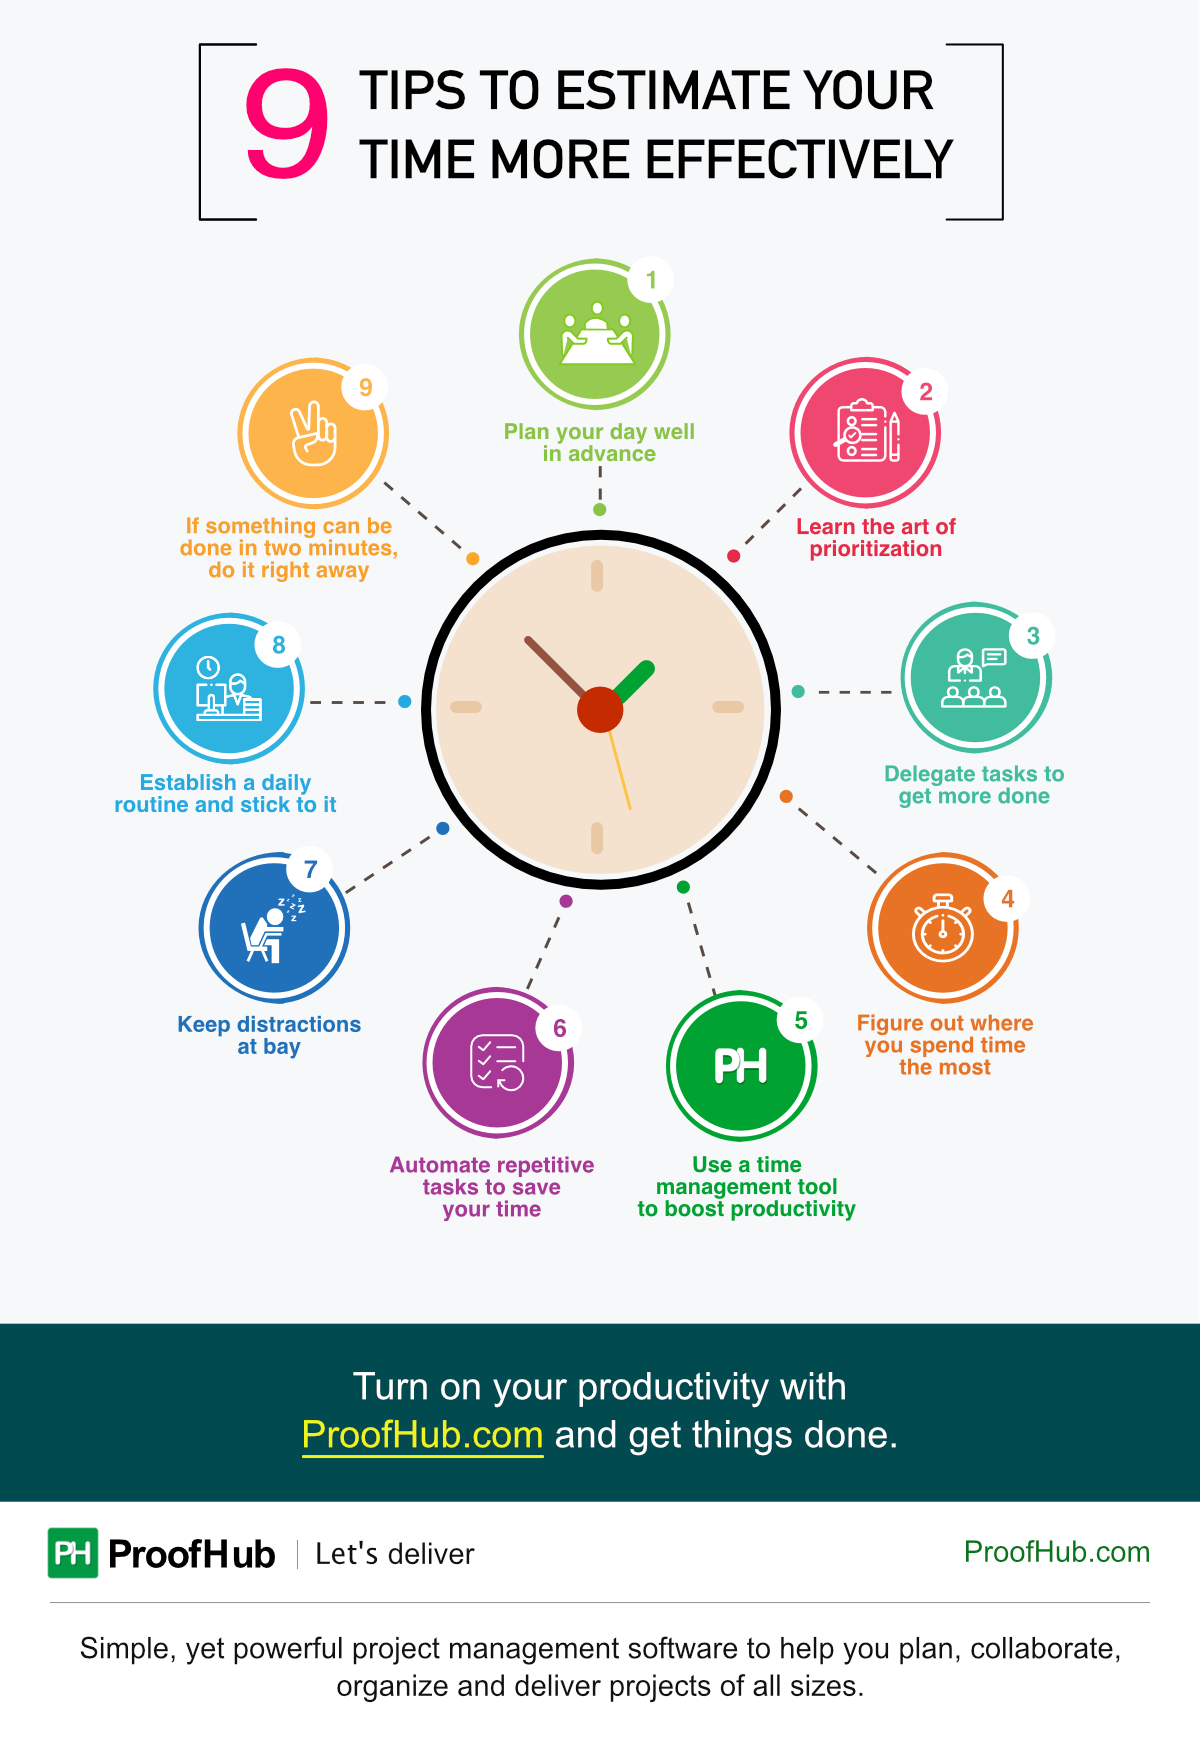 9 Tips to Estimate Your Time More Effectively